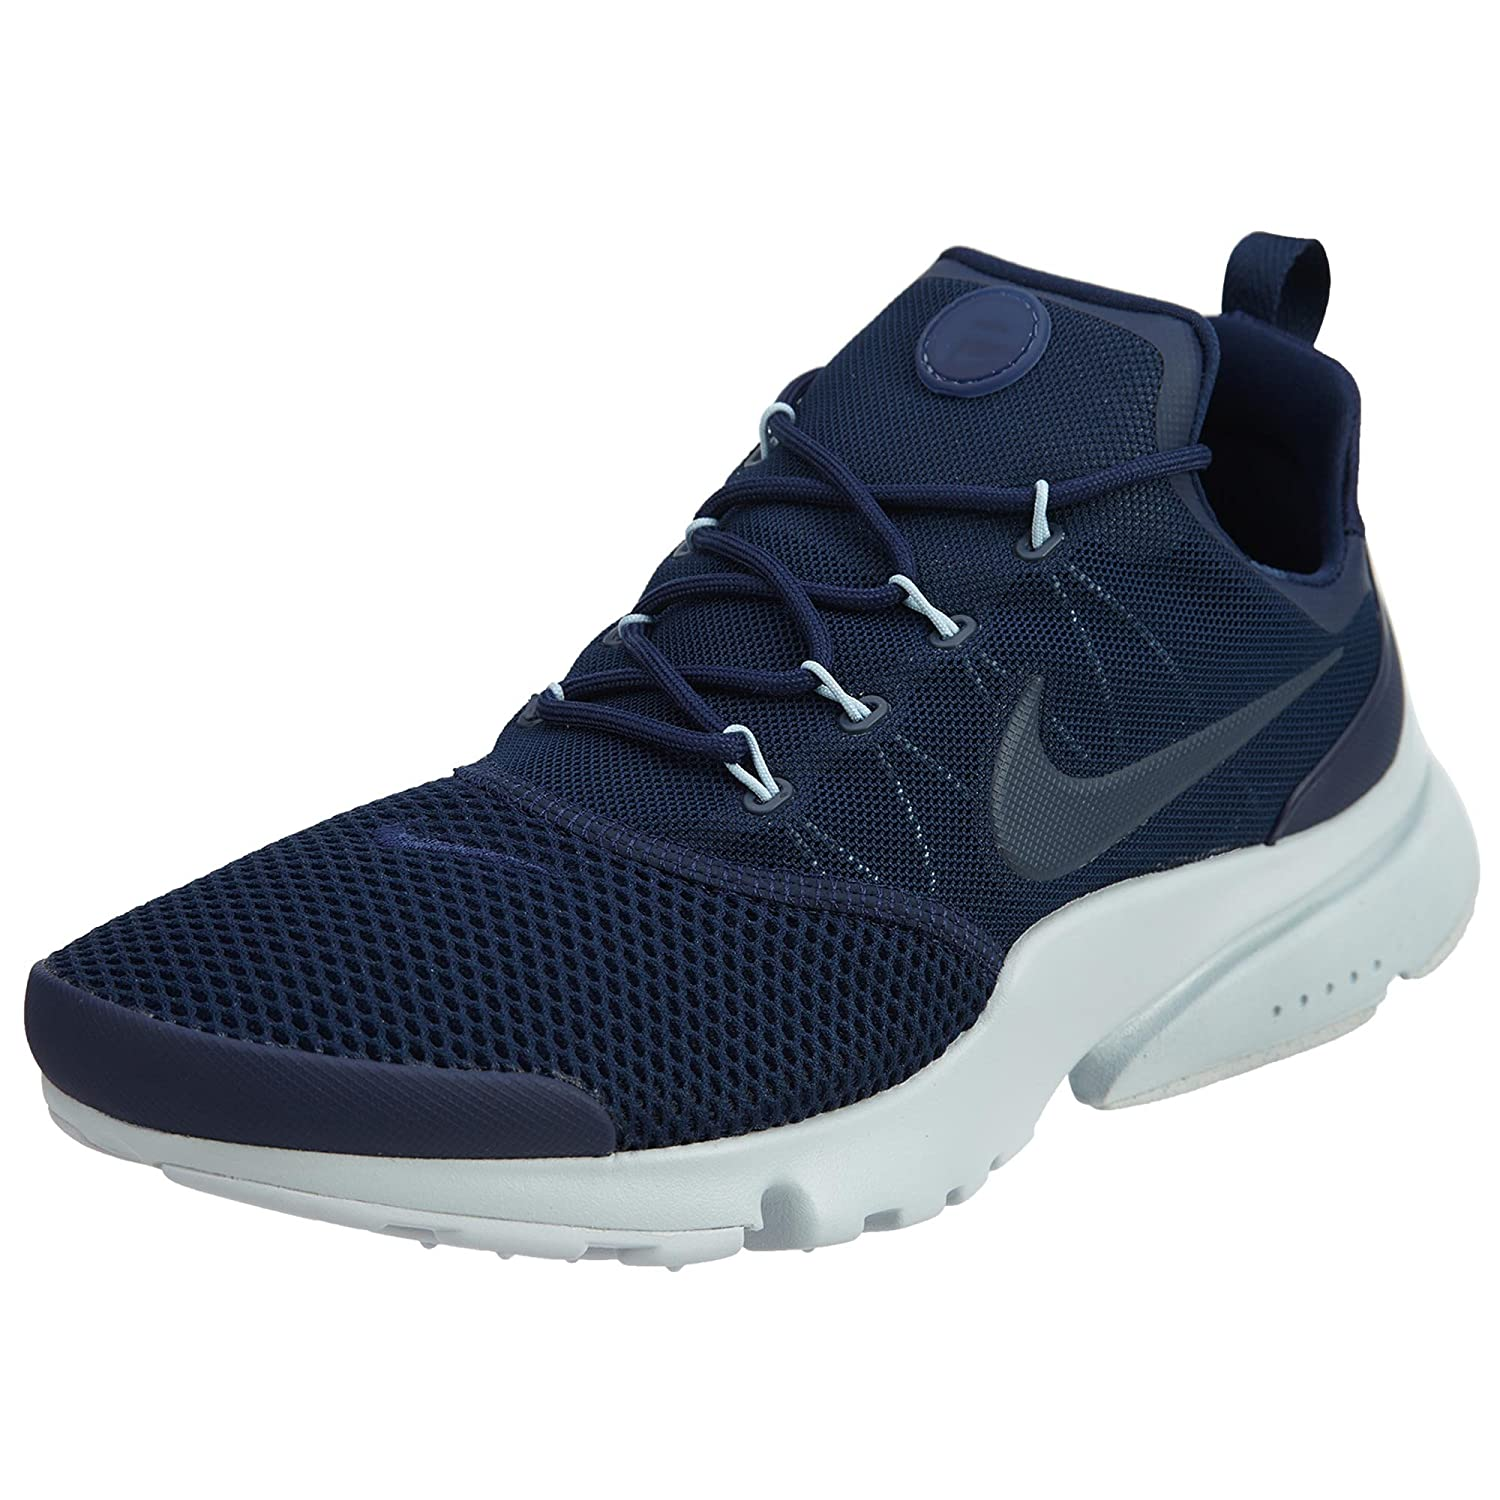 19e46d78420d5 New Arrival Nike Men Presto Fly Running Sneaker Shoes Midnight  Navy Midnight Navy The Cheapest